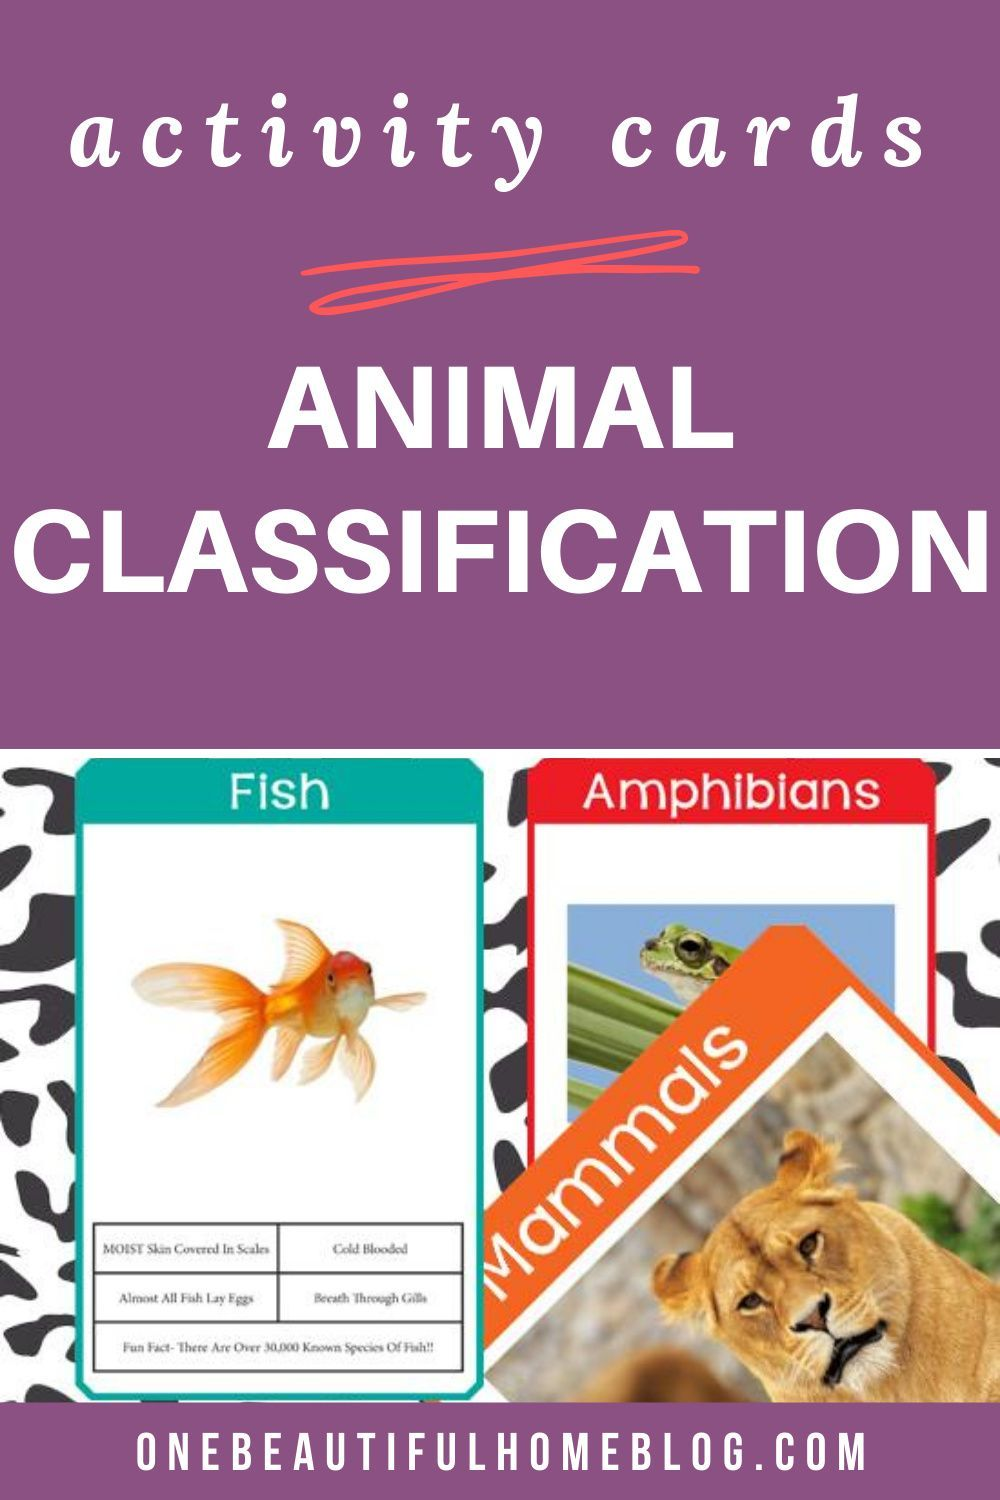 Animal classification cards one beautiful home in 2020